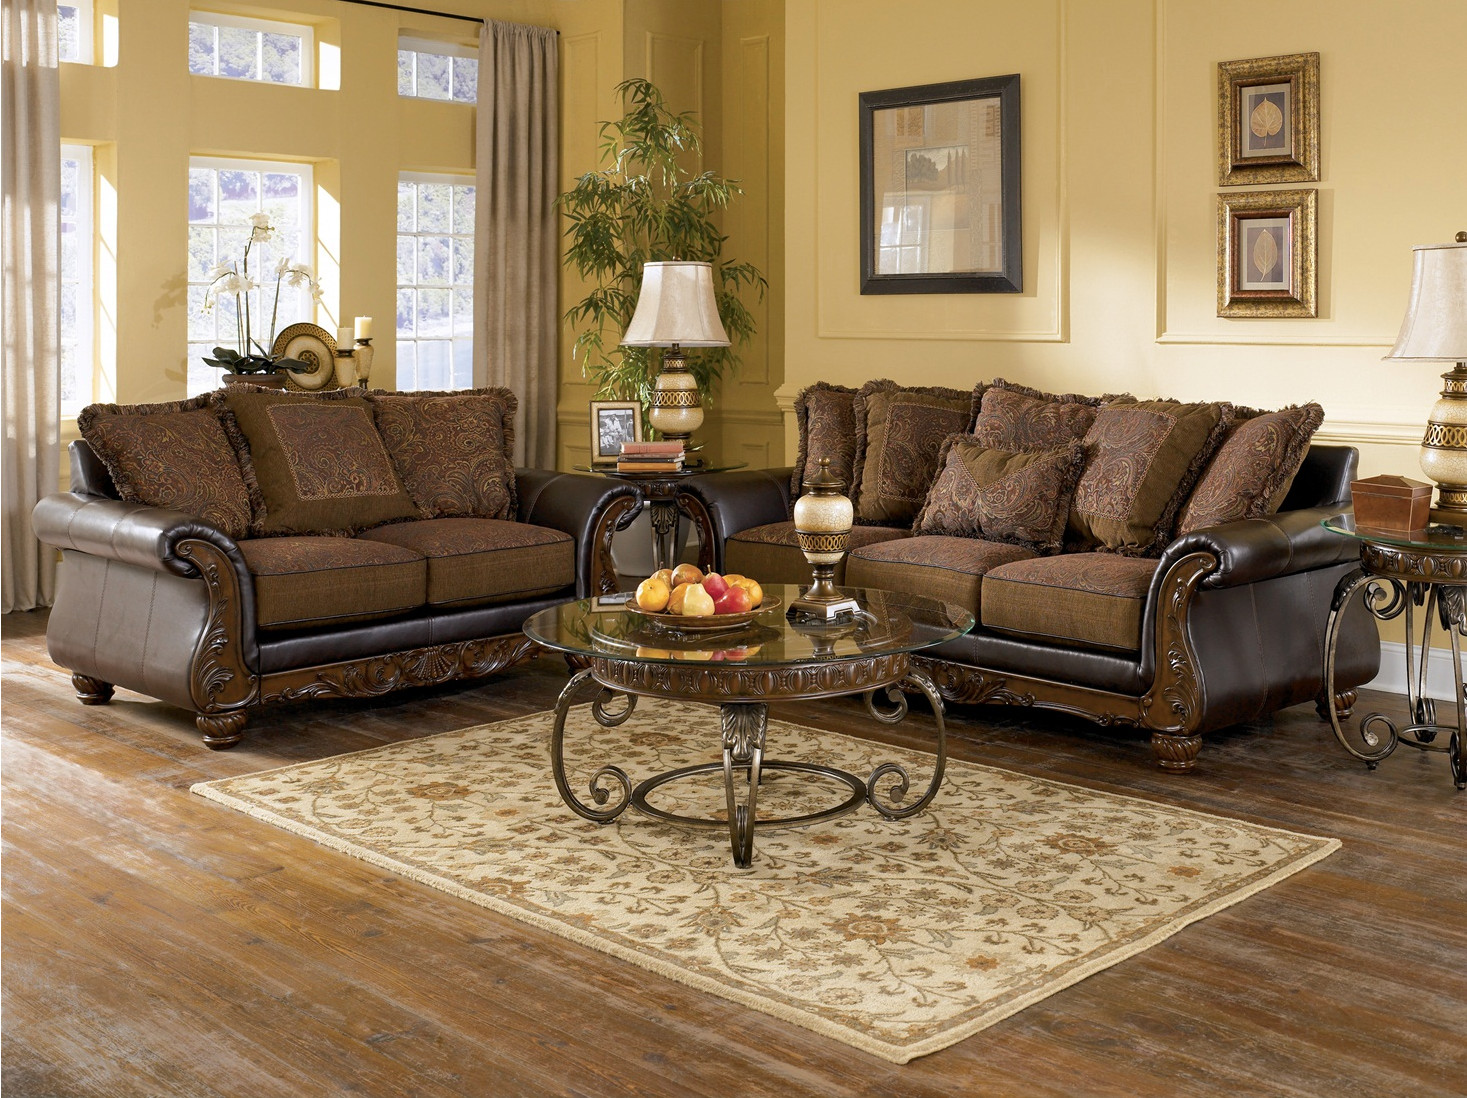 Traditional Living Room Sets Luxury Wilmington Traditional Living Room Furniture Set by ashley